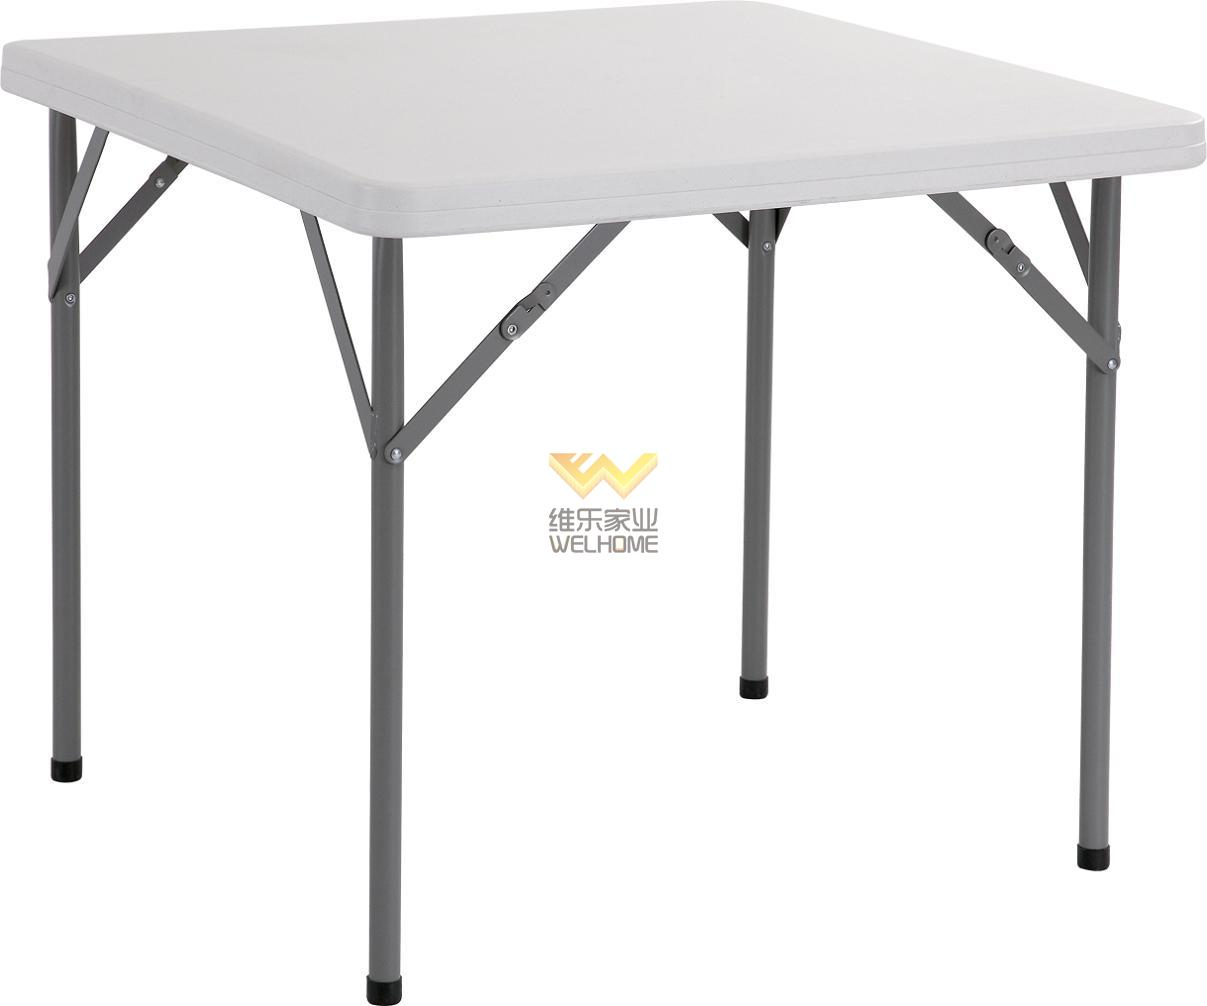 Plastic Square folding table for event/meetings